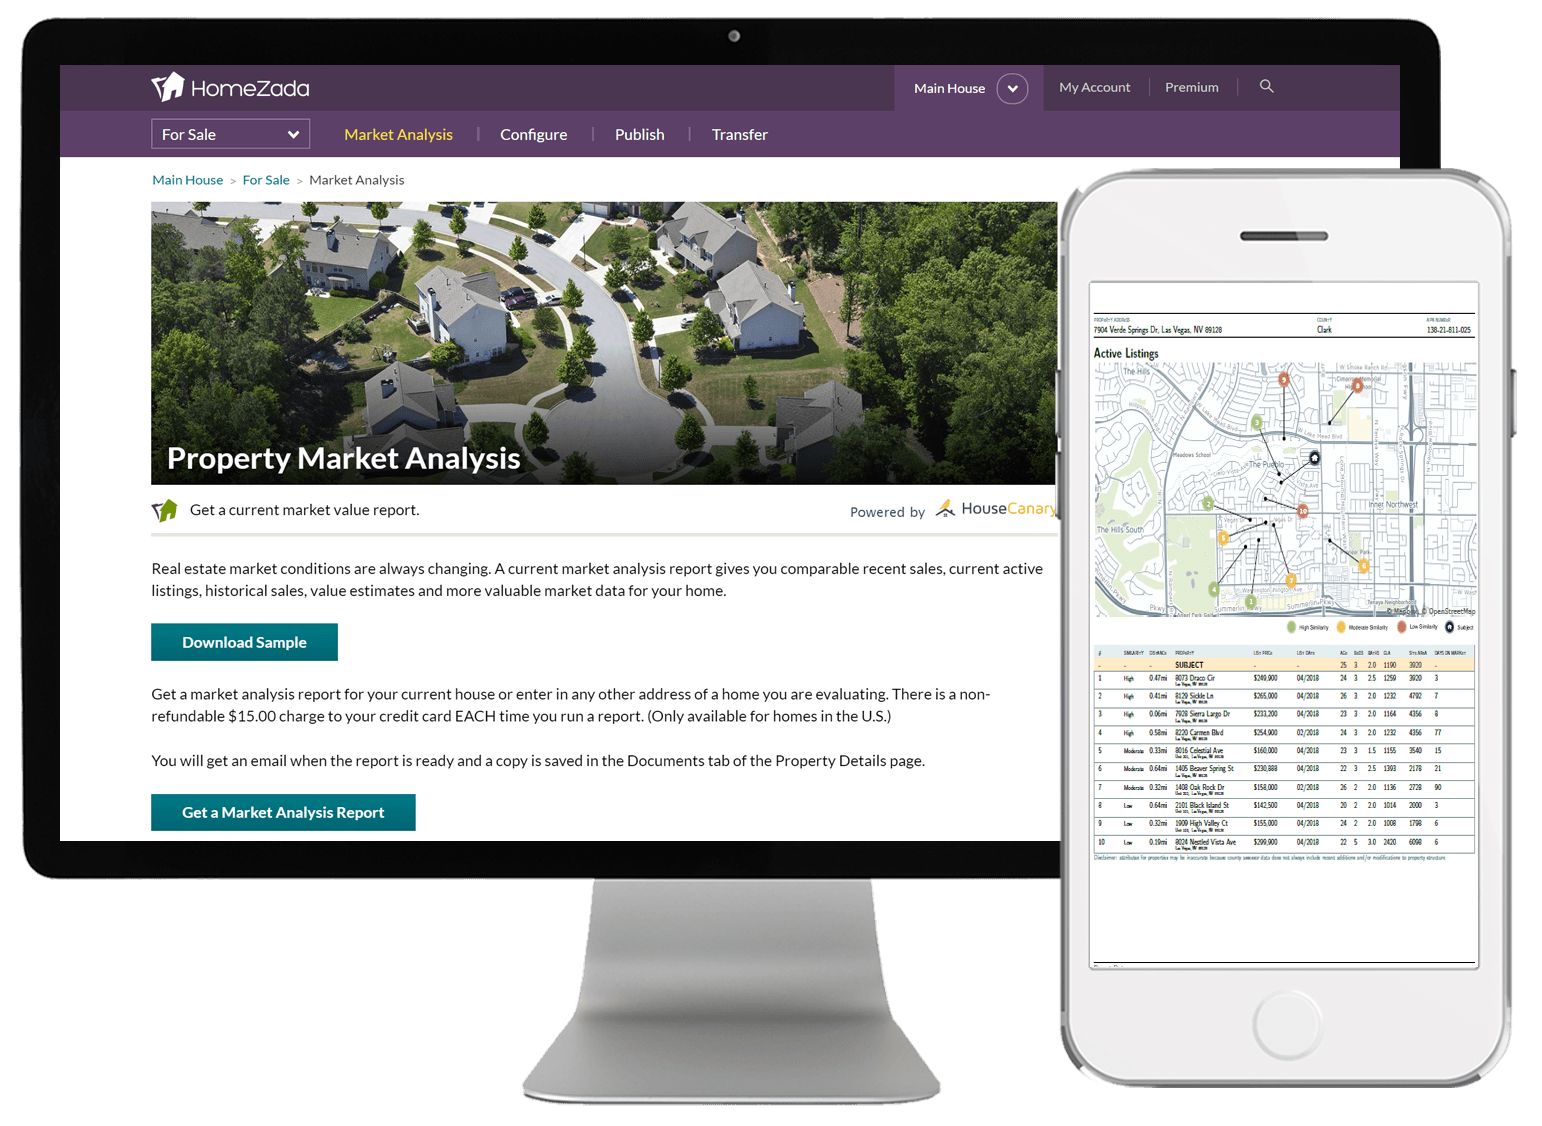 HomeZada Market Analysis CMA Report